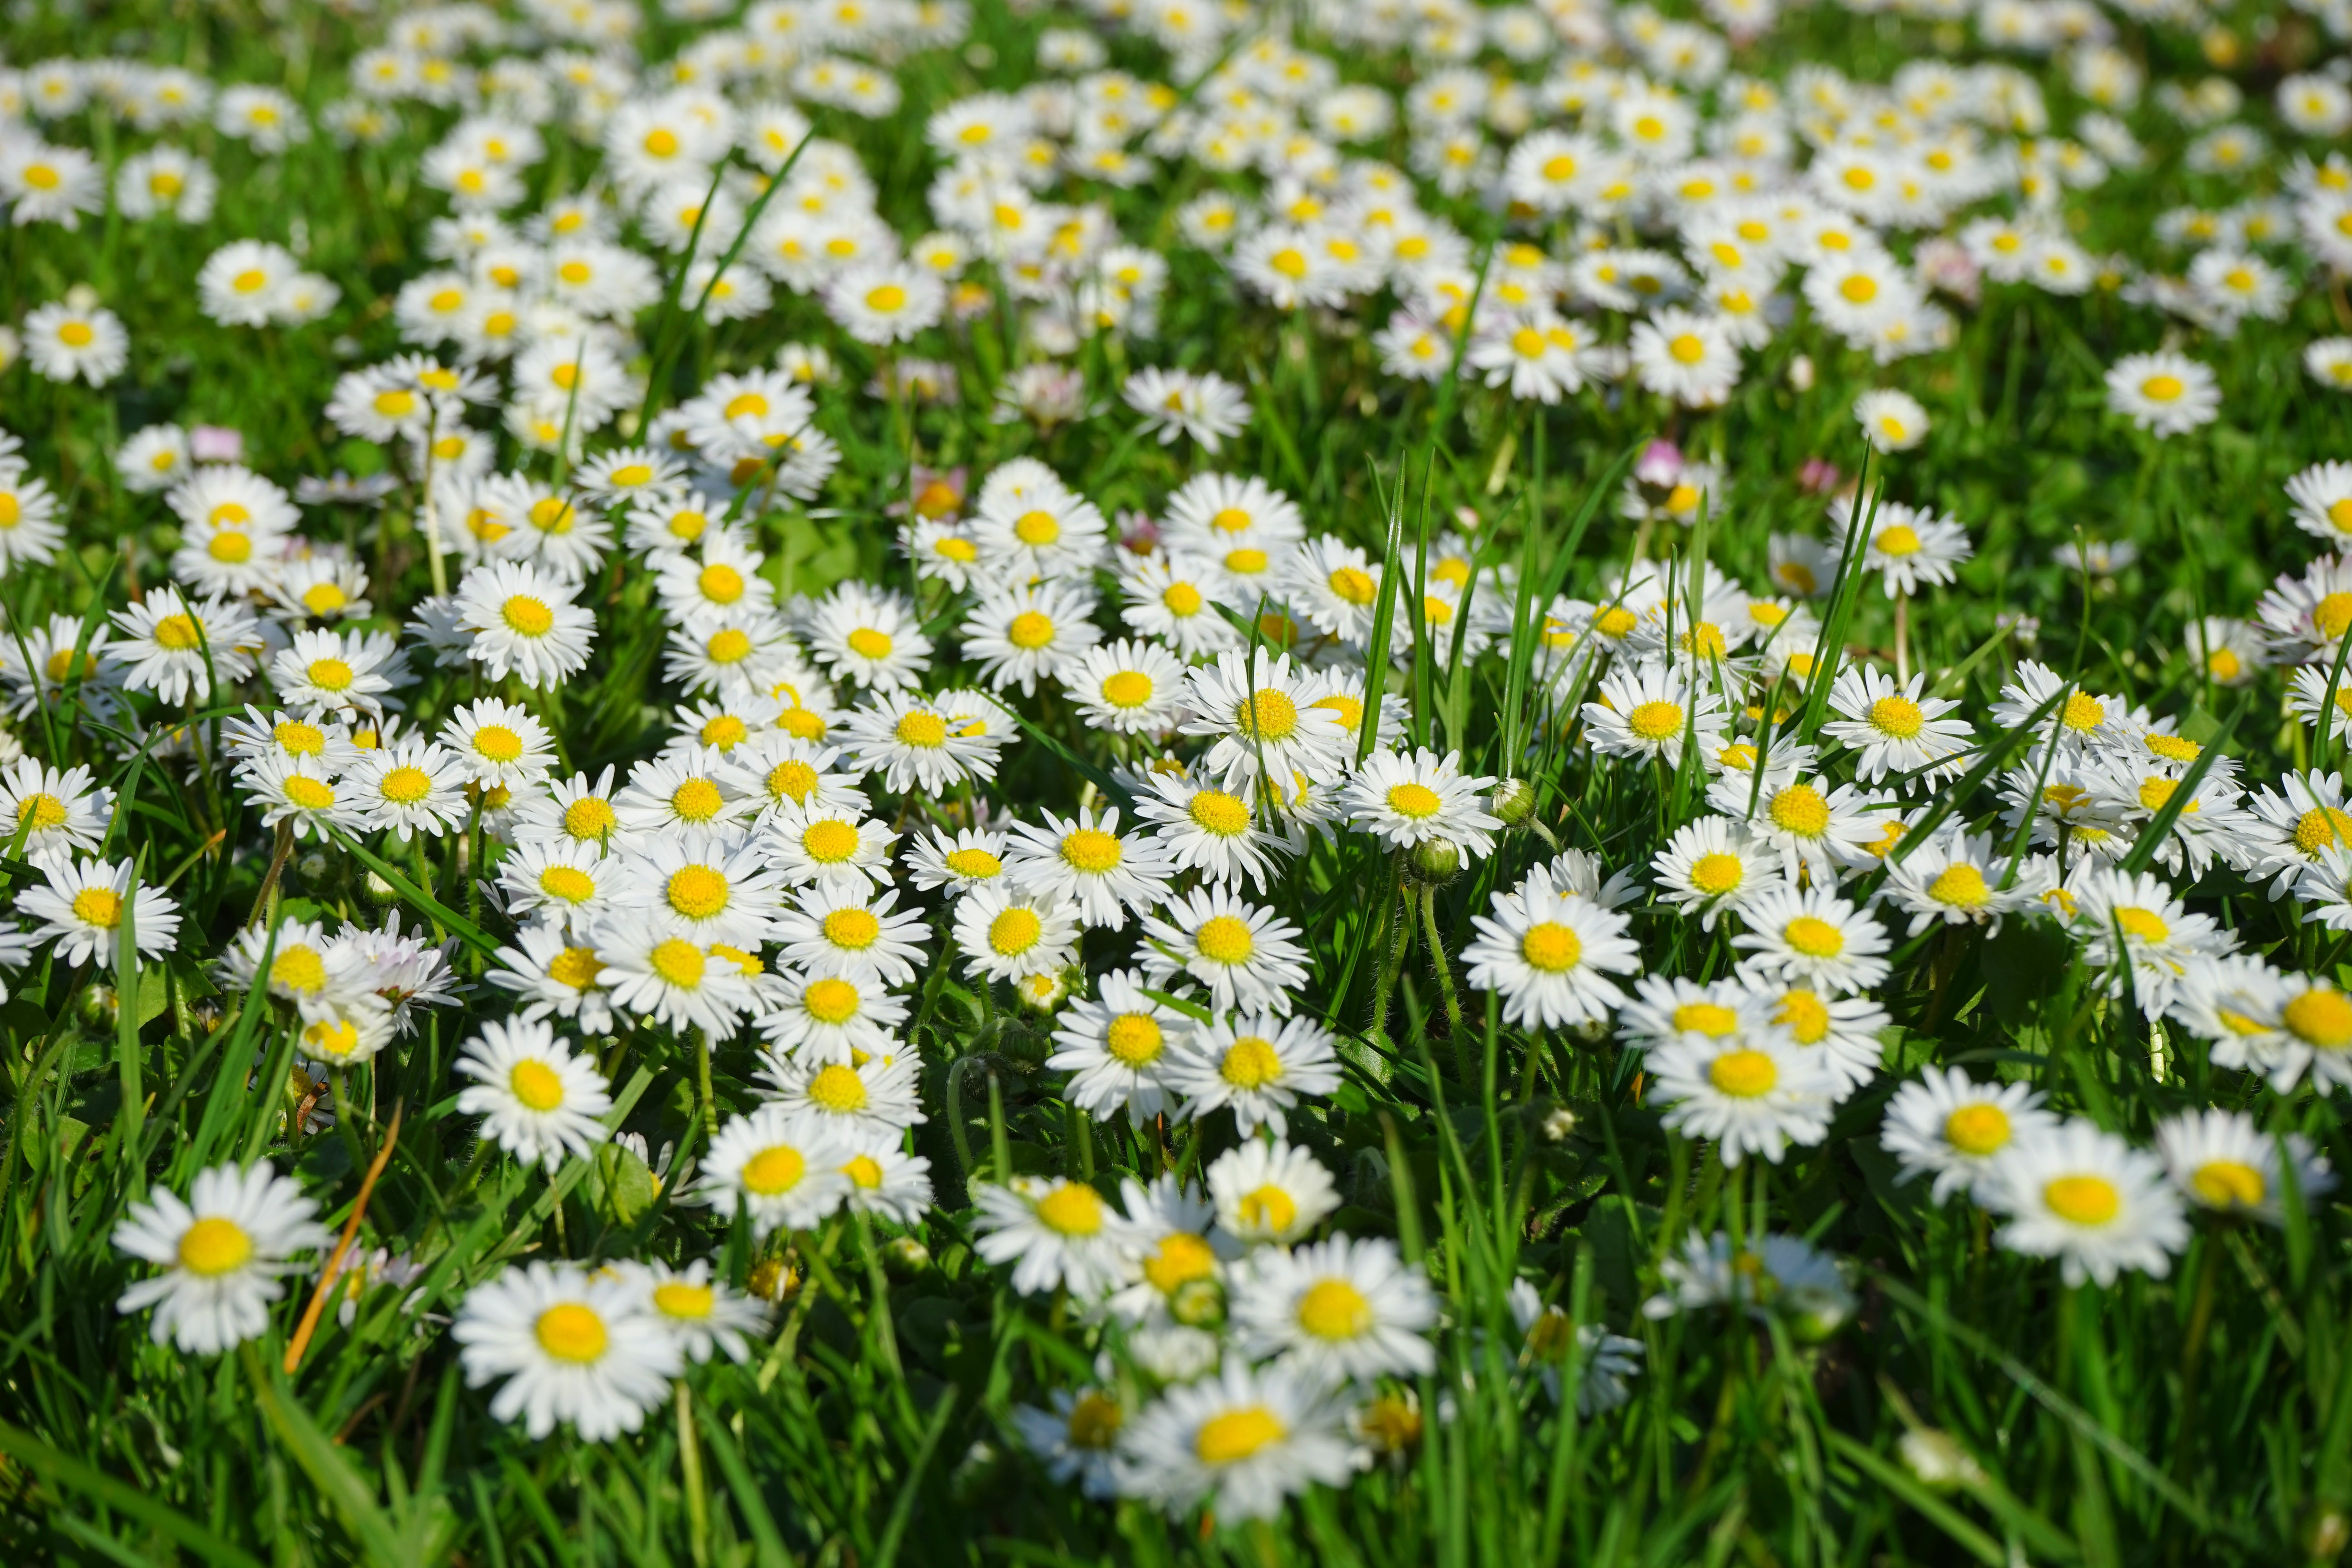 Field of White and Yellow Daisies